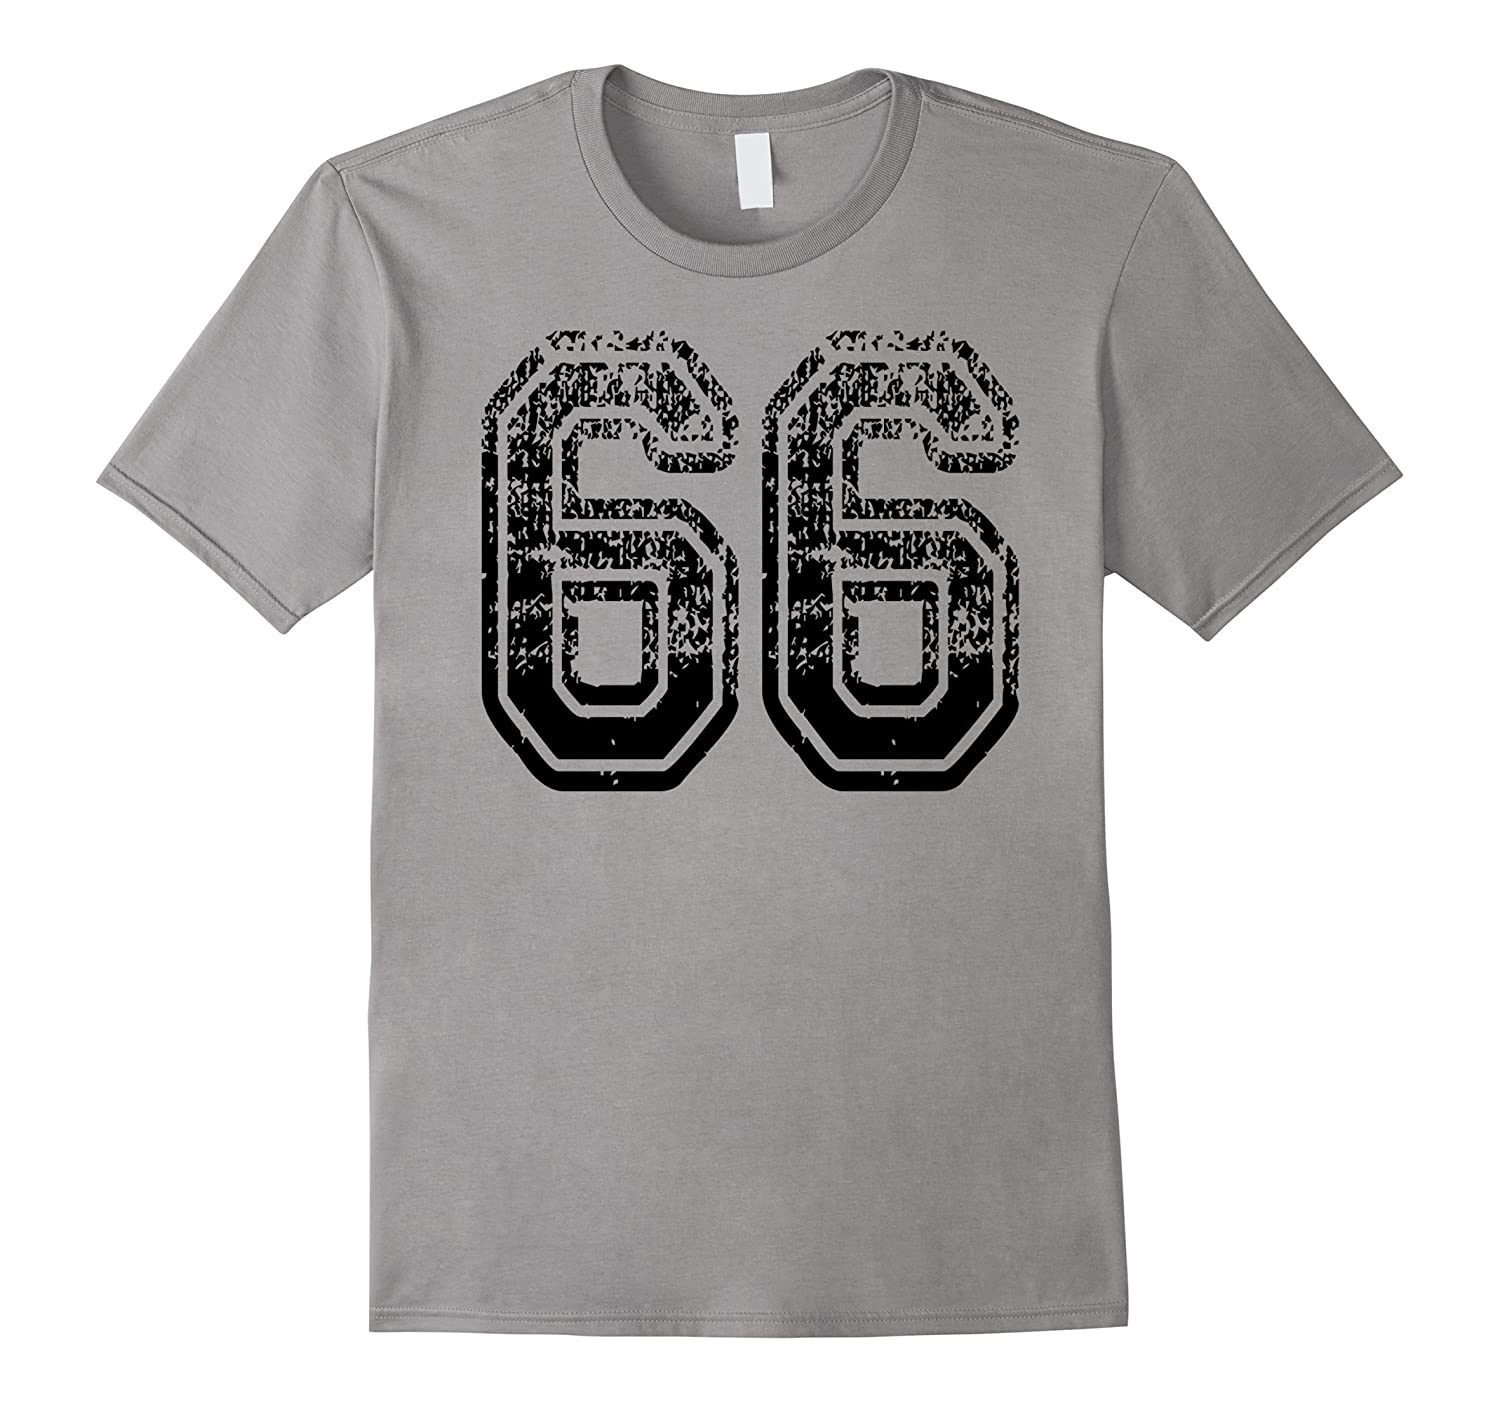 #66 Grungy Numbered Sports Team T-Shirts both sides in black-ANZ